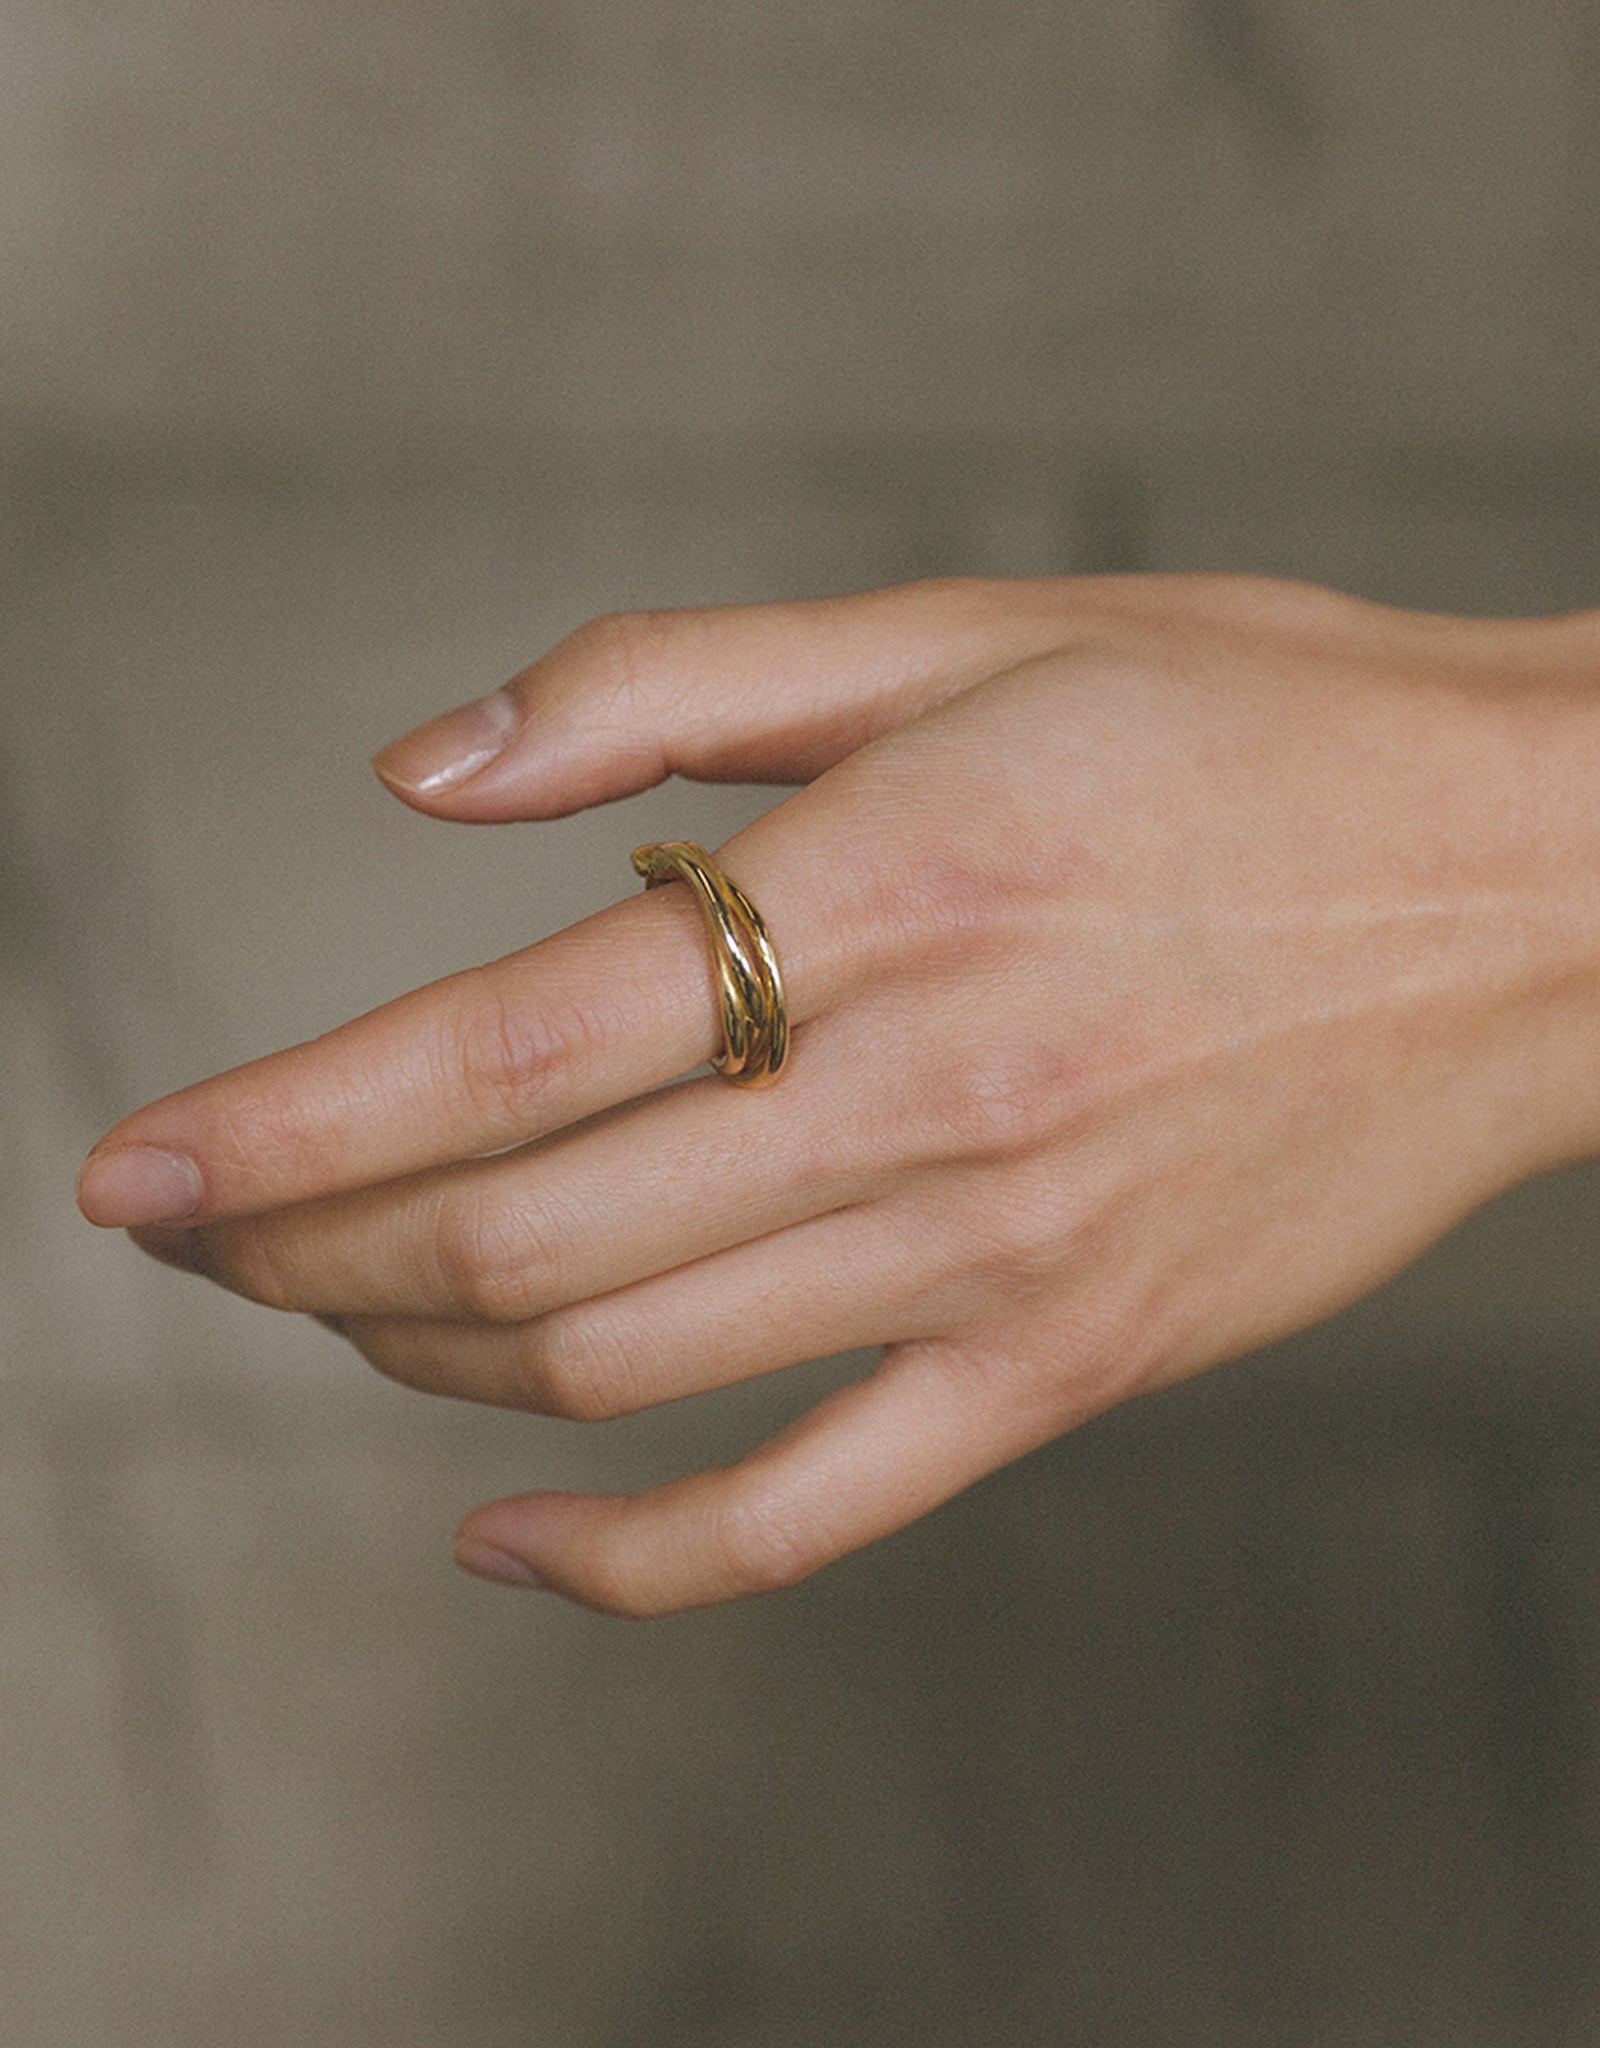 Faris bronze Tangle Ring on hand. Available at FAWN Toronto.